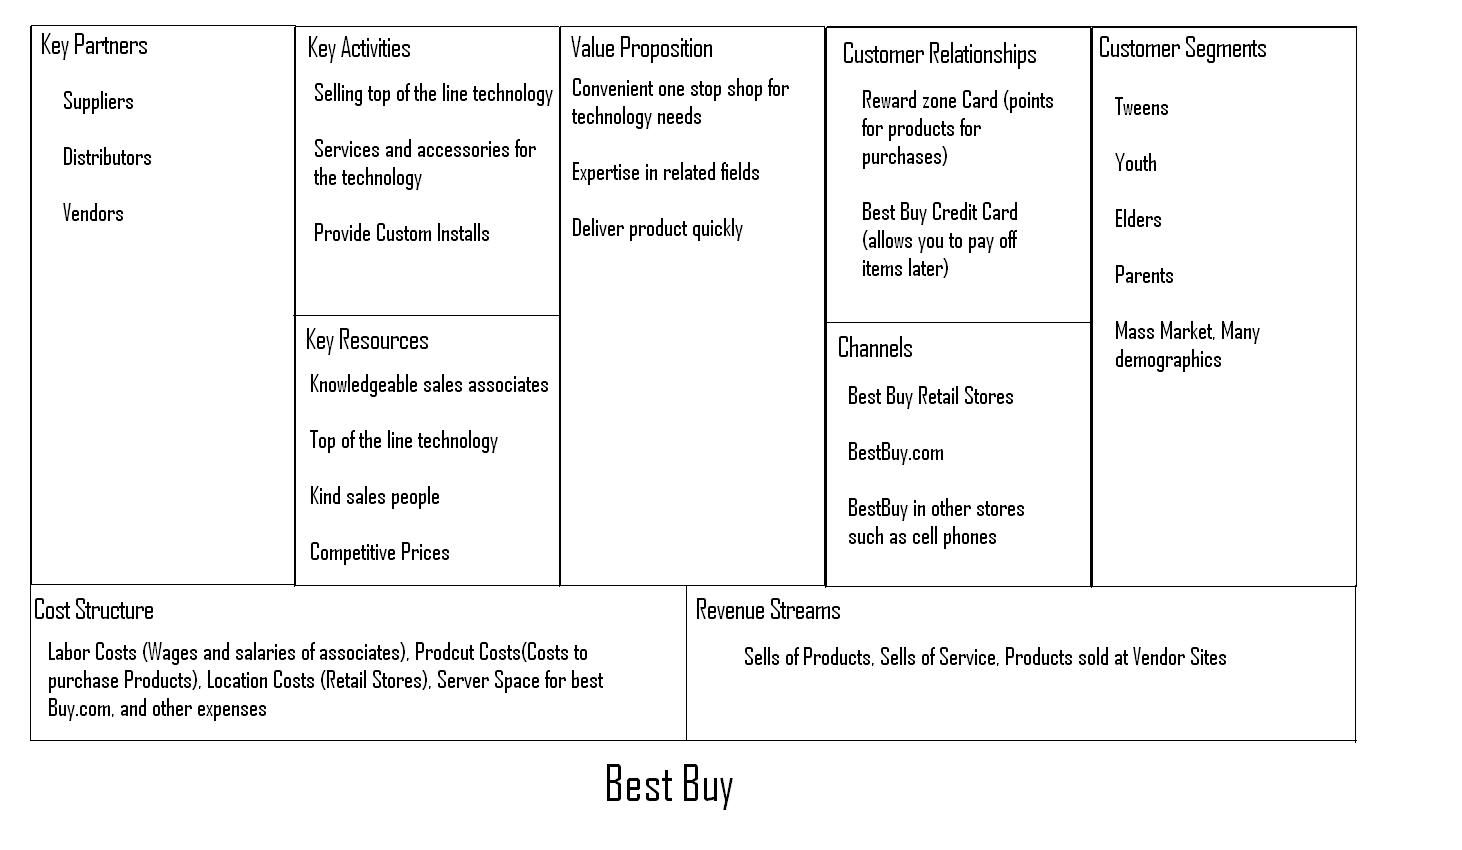 Mist 7500 fall 2011 a3 business model generation canvas i created a business model canvas for best buy the company is an electronic retail store that also provides services such as car installs computer set up reheart Choice Image